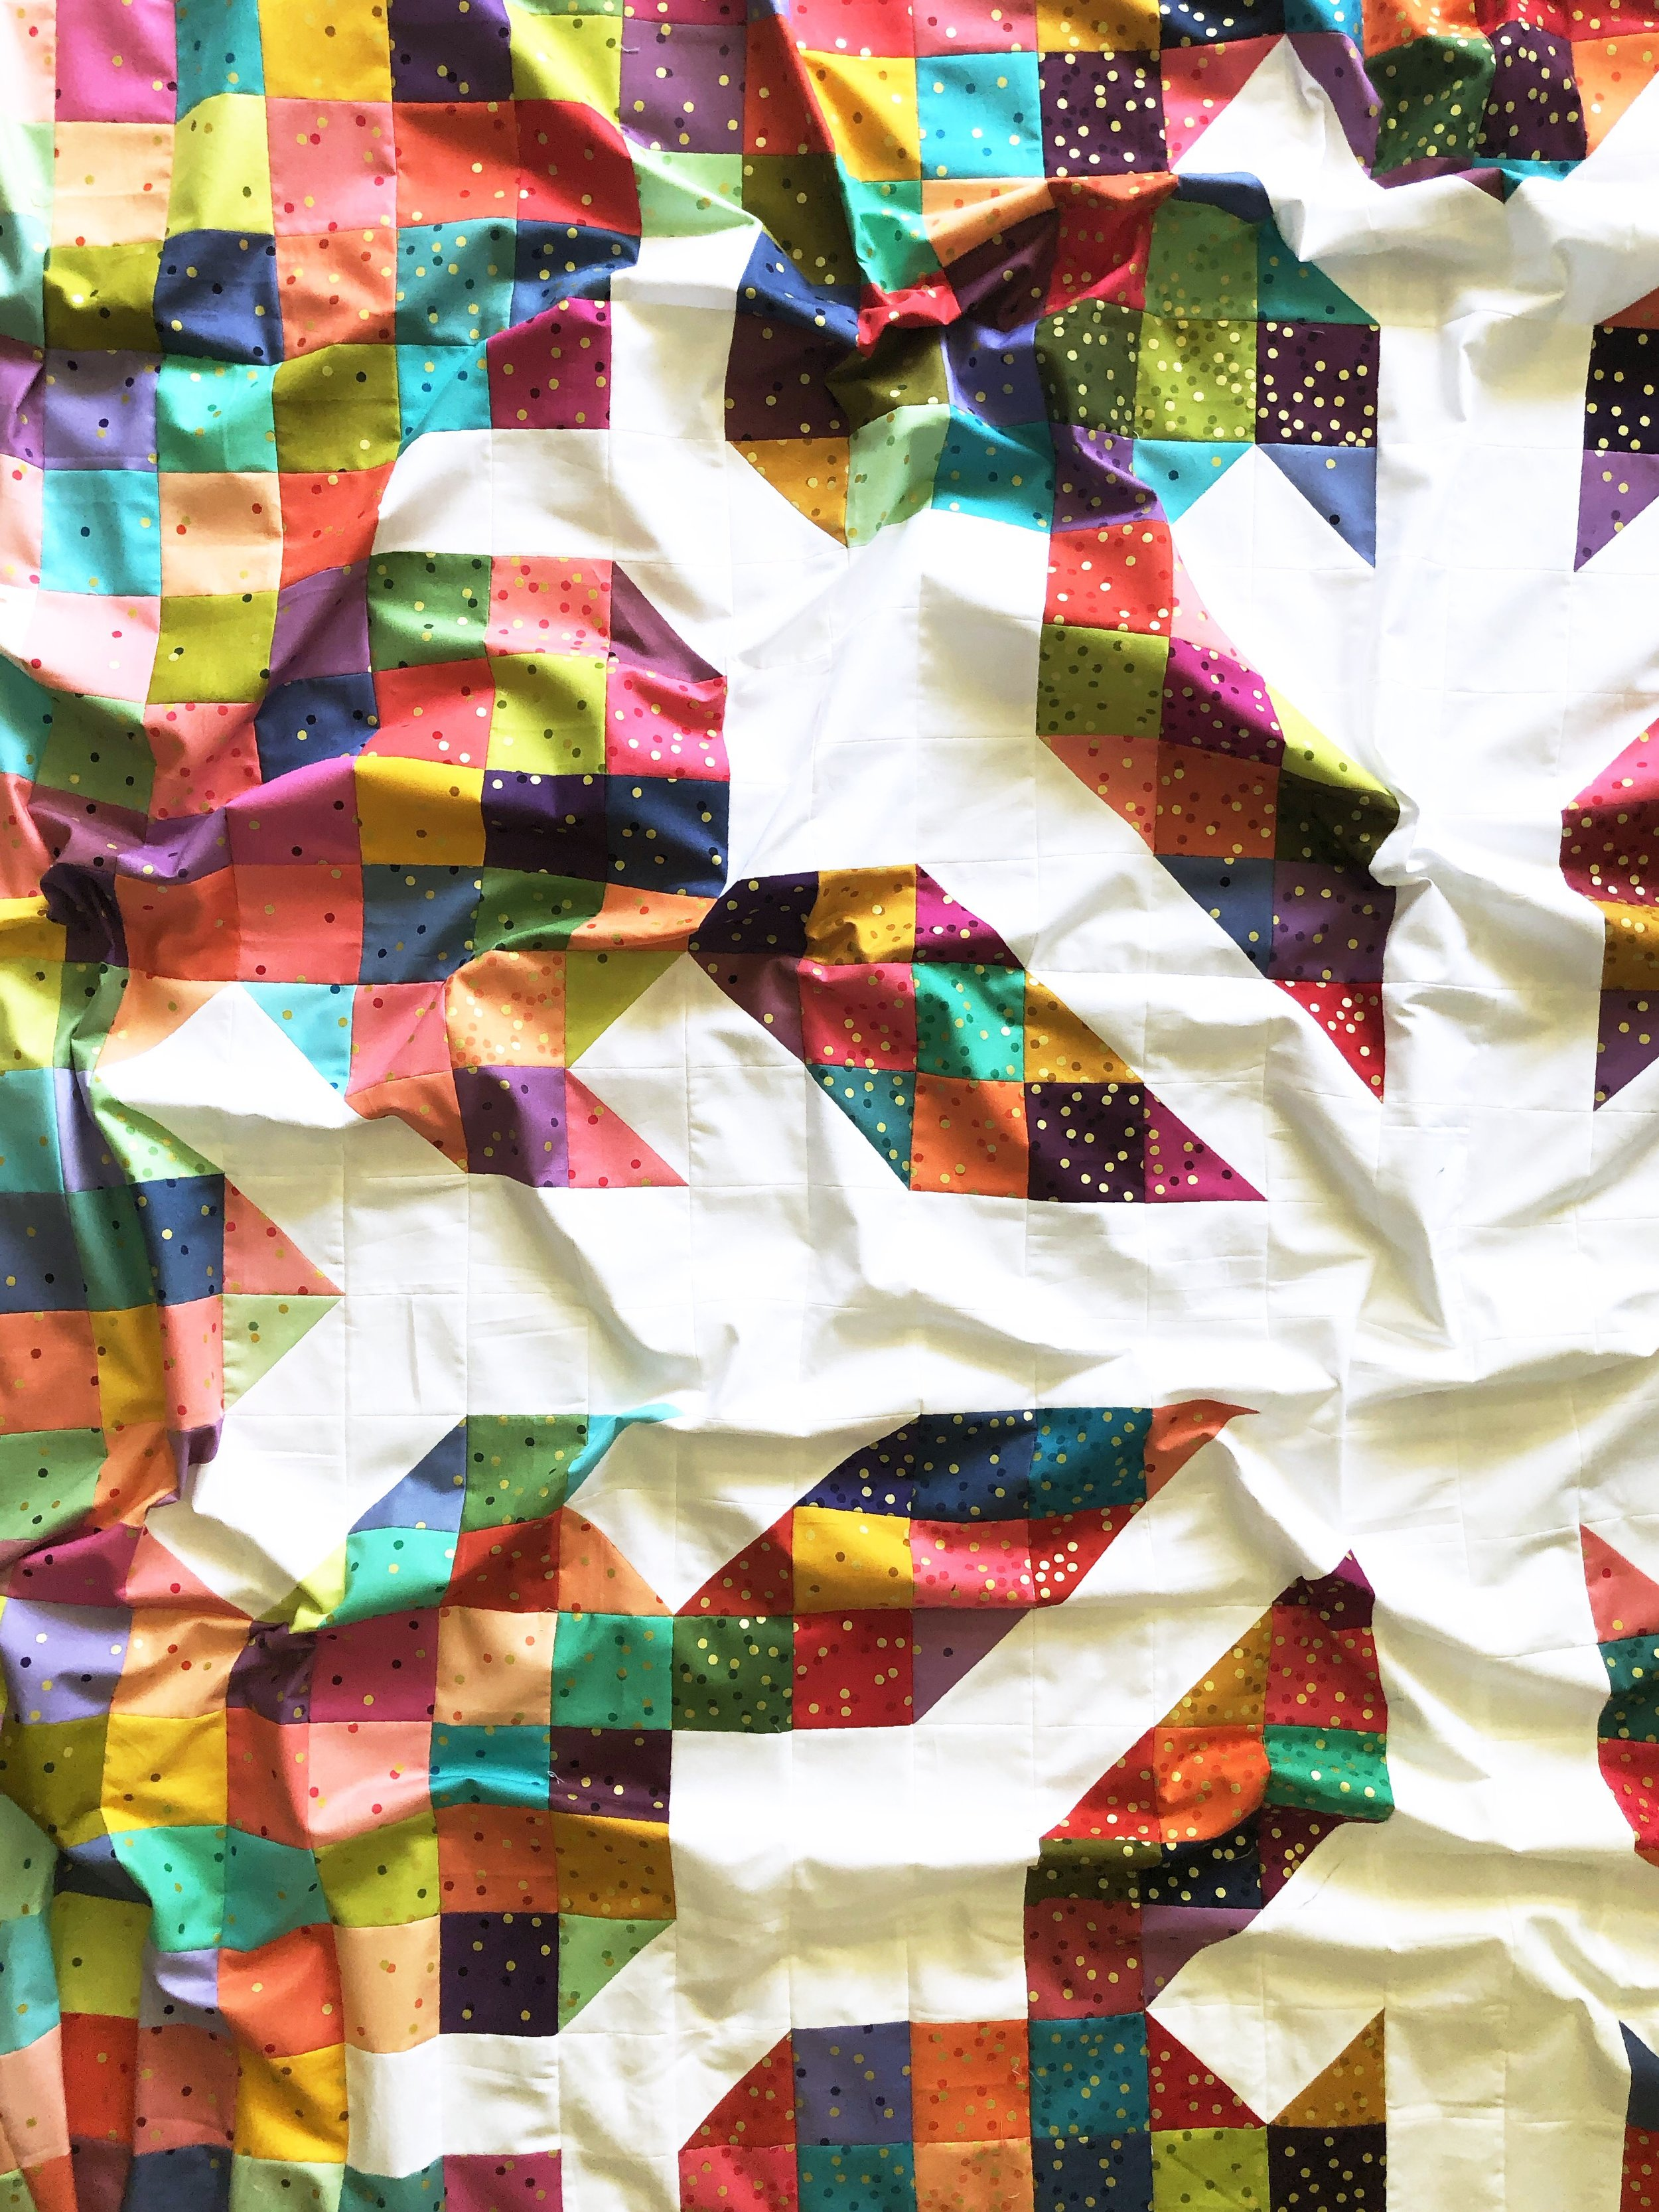 My most recent Snowflake quilt top finish - this one featuring a fun mix of V and Co. Ombré Confetti Metallic in the Scrappy version.